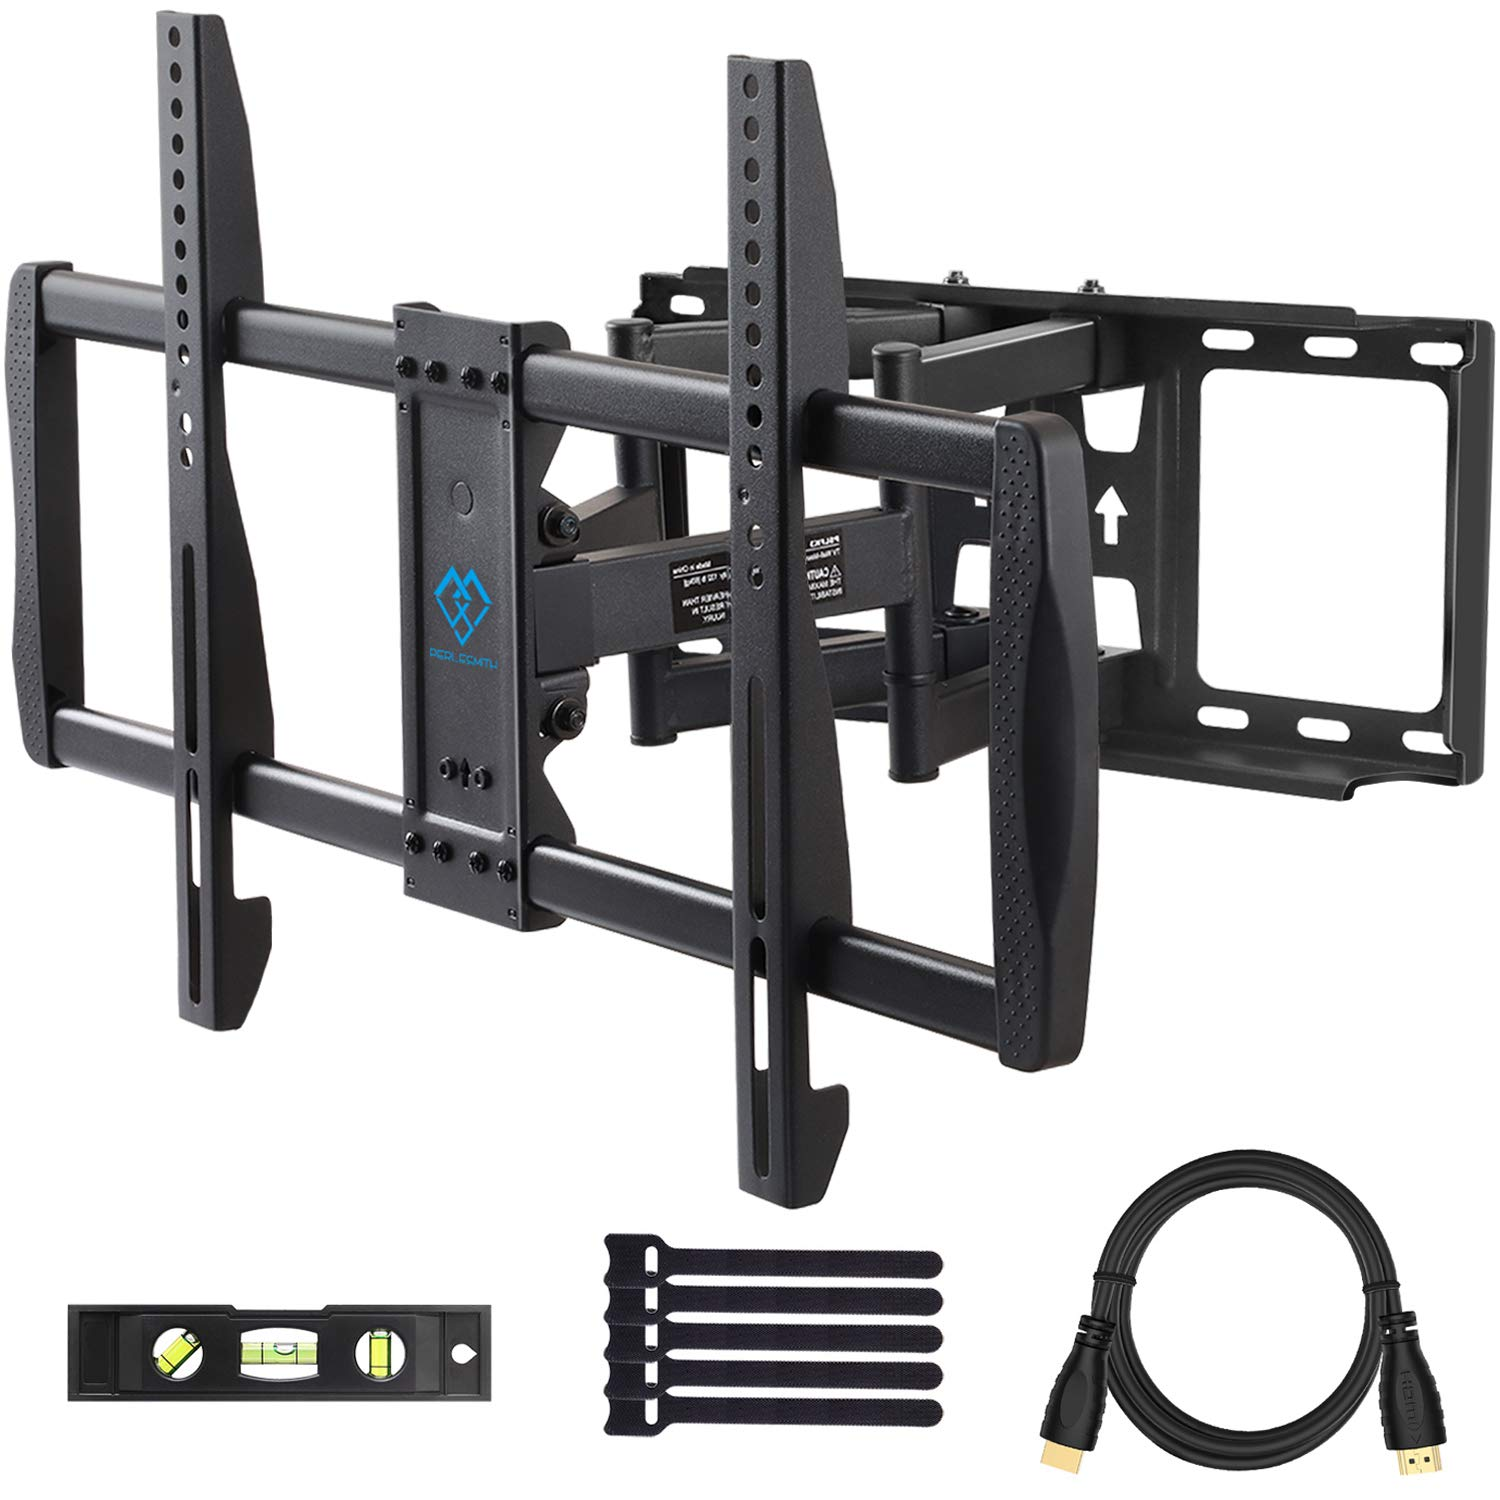 PERLESMITH Full Motion TV Wall Mount - Dual 6 Arms Articulating TV Mount for 37-70 Inch LED, LCD, Plasma TVs up to 132lbs VESA 600x400, Features Smooth Articulation, Swivel, Tilt - PSLFK3